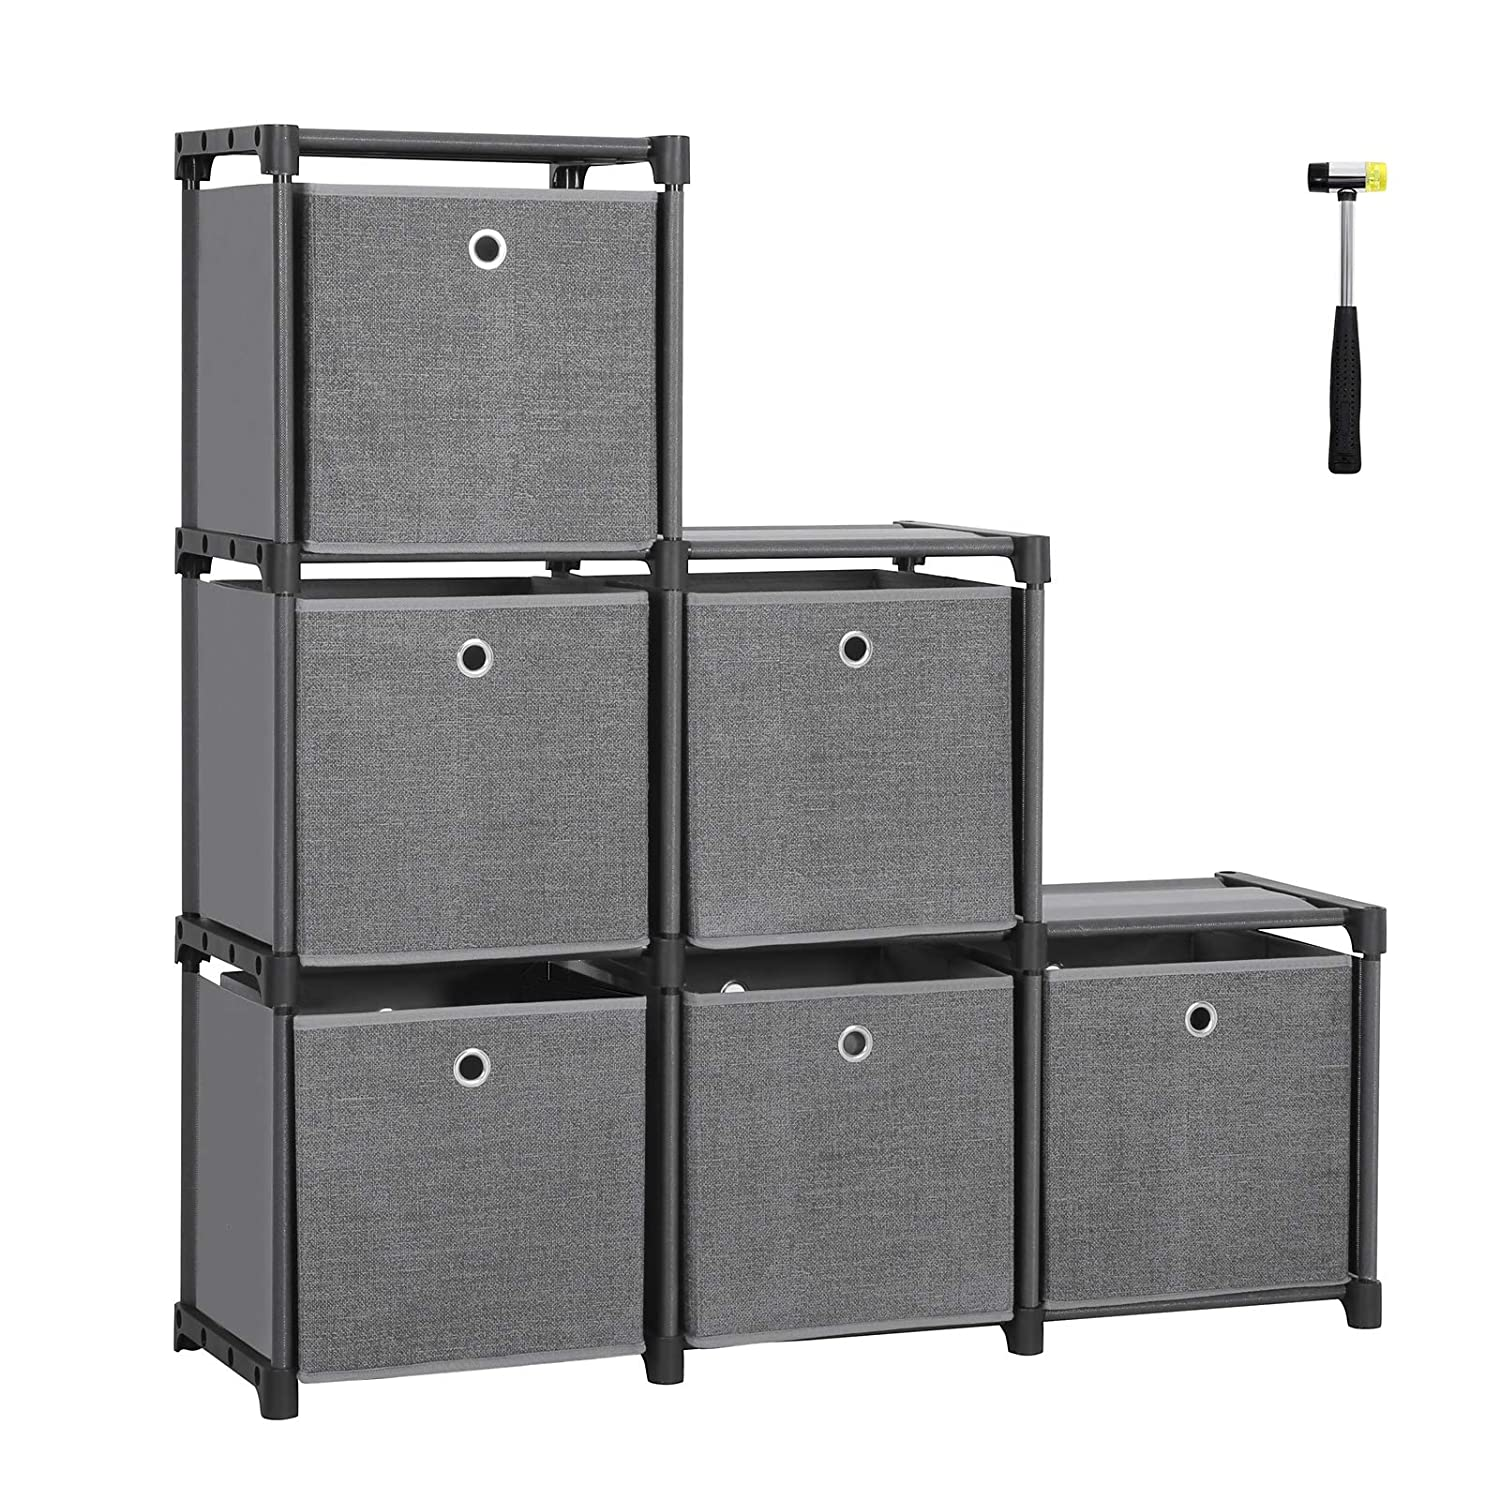 SONGMICS Ladder Storage Unit 6 Cubes with 6 Storage Boxes DIY Closet Organiser Multifunctional with Modular Sturdy Metal Frame Includes Rubber Mallet 105 x 30 x 105 cm (W x D x H) Black LSN66BK